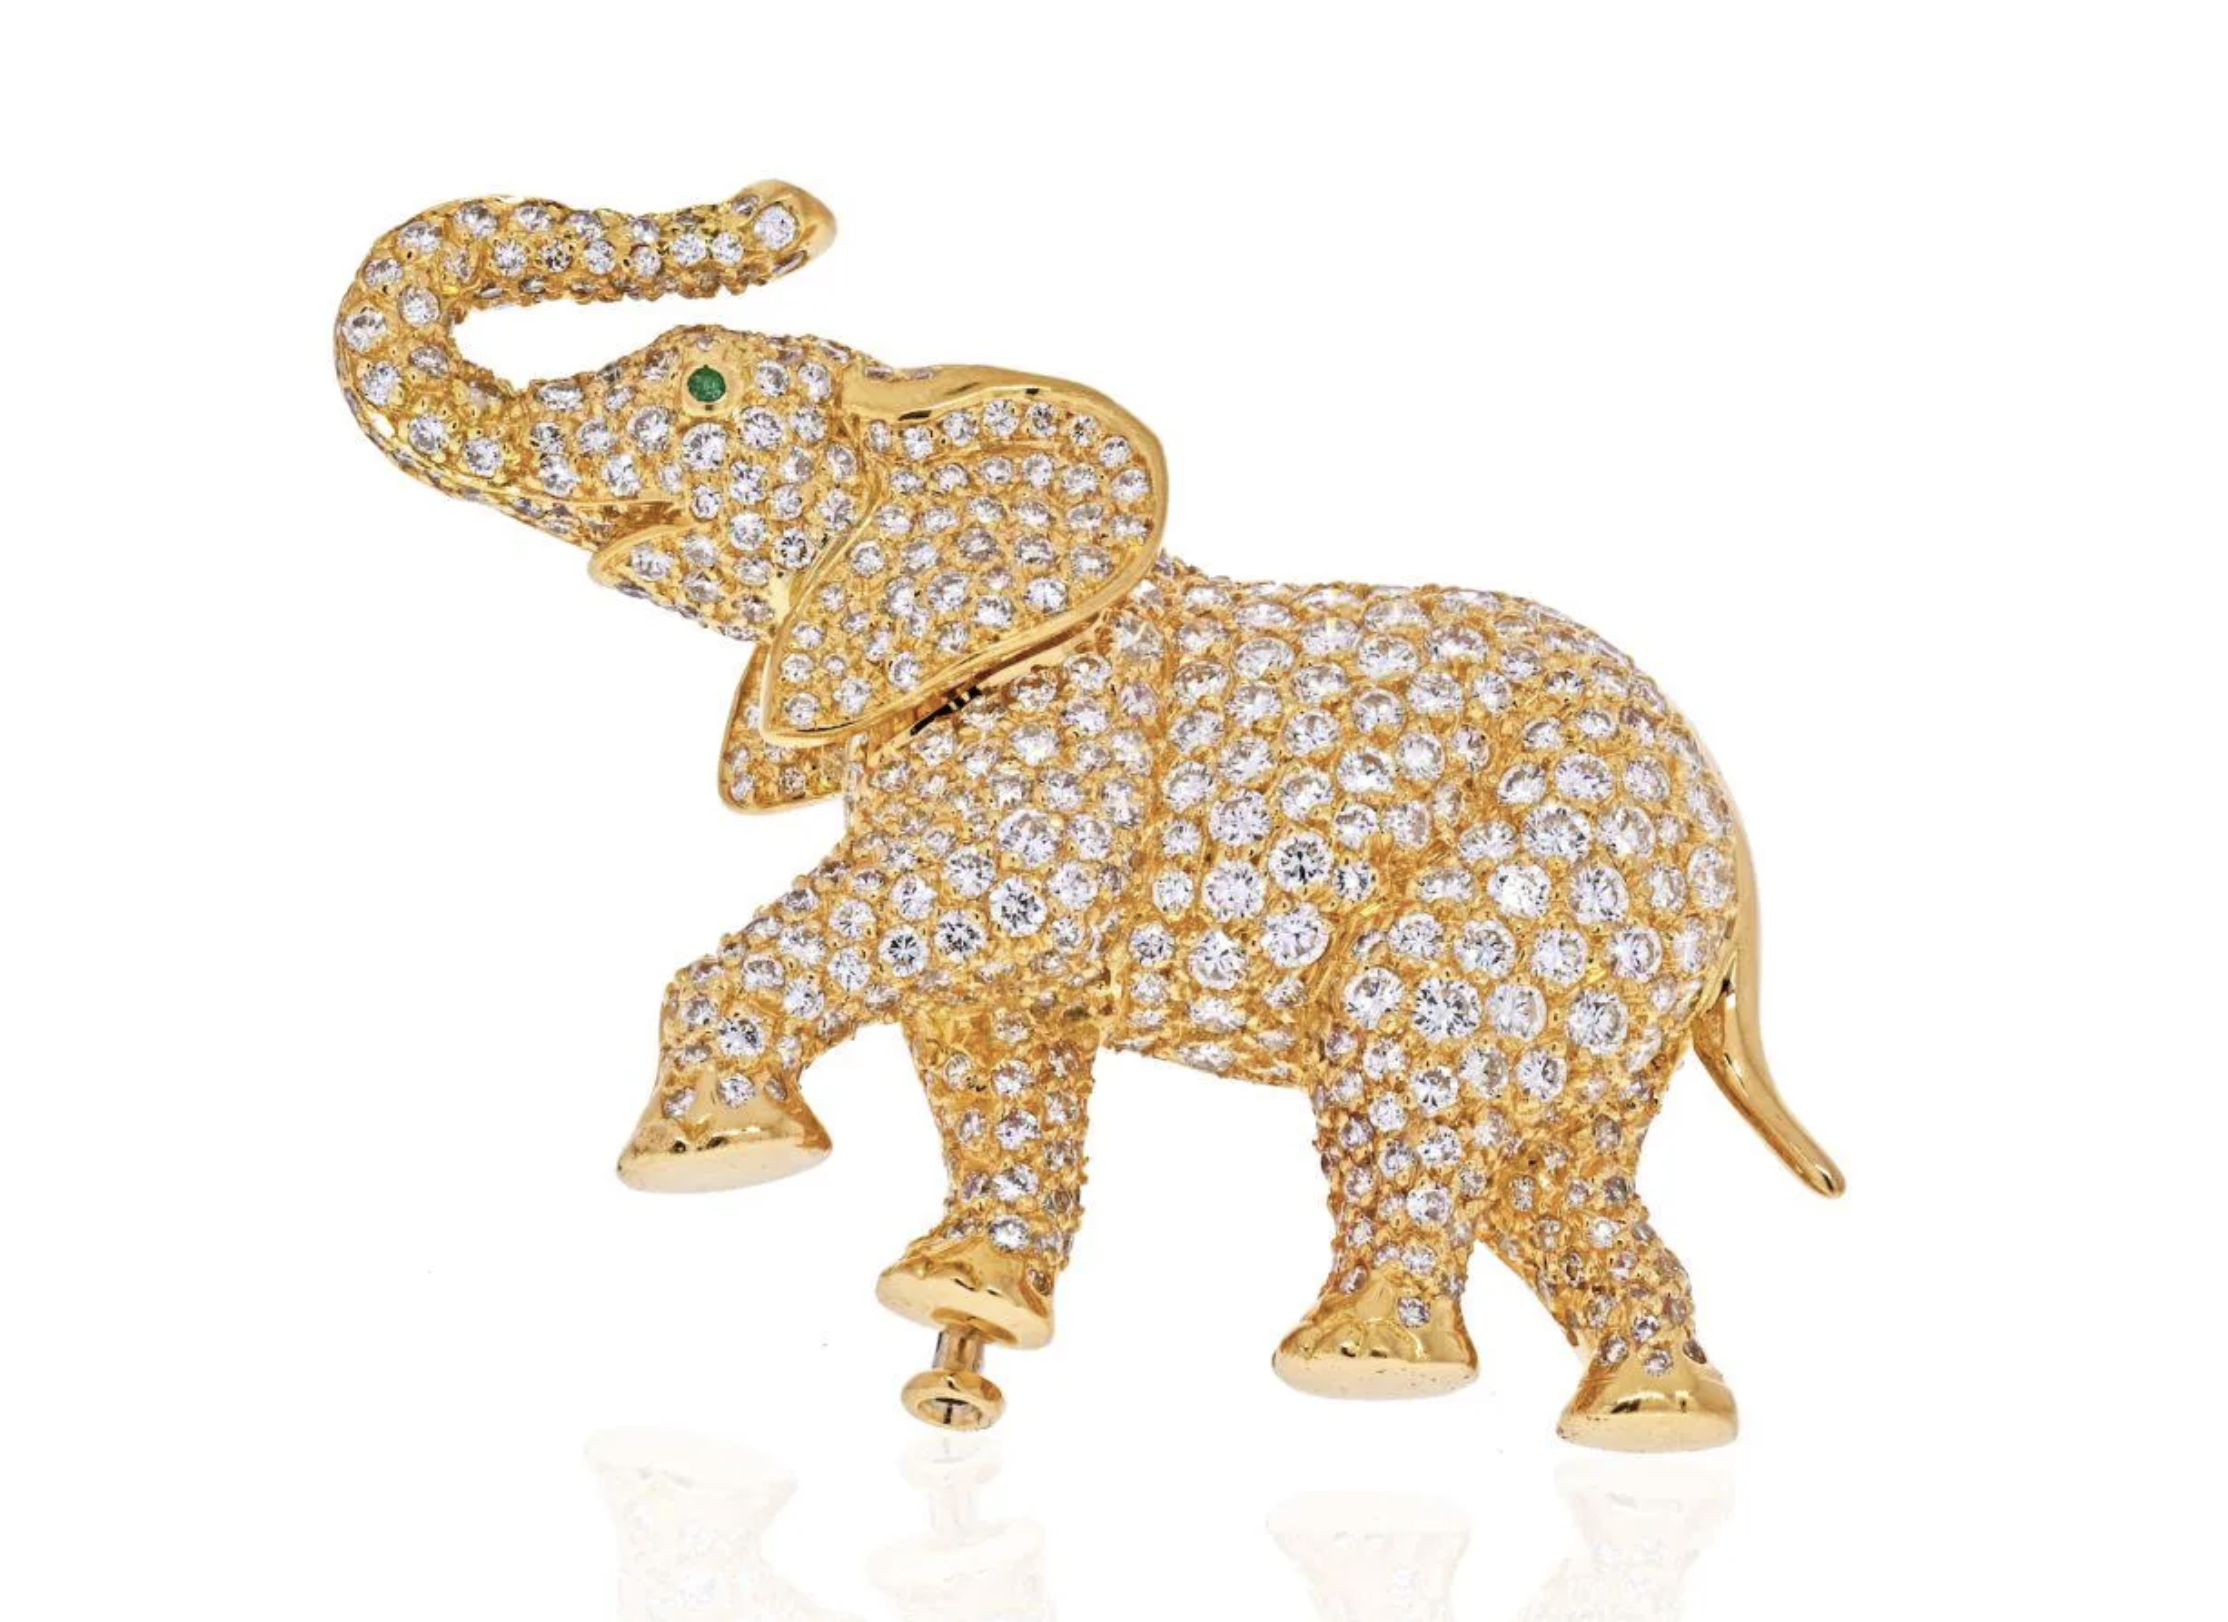 Build your own menagerie of animal-themed jewelry